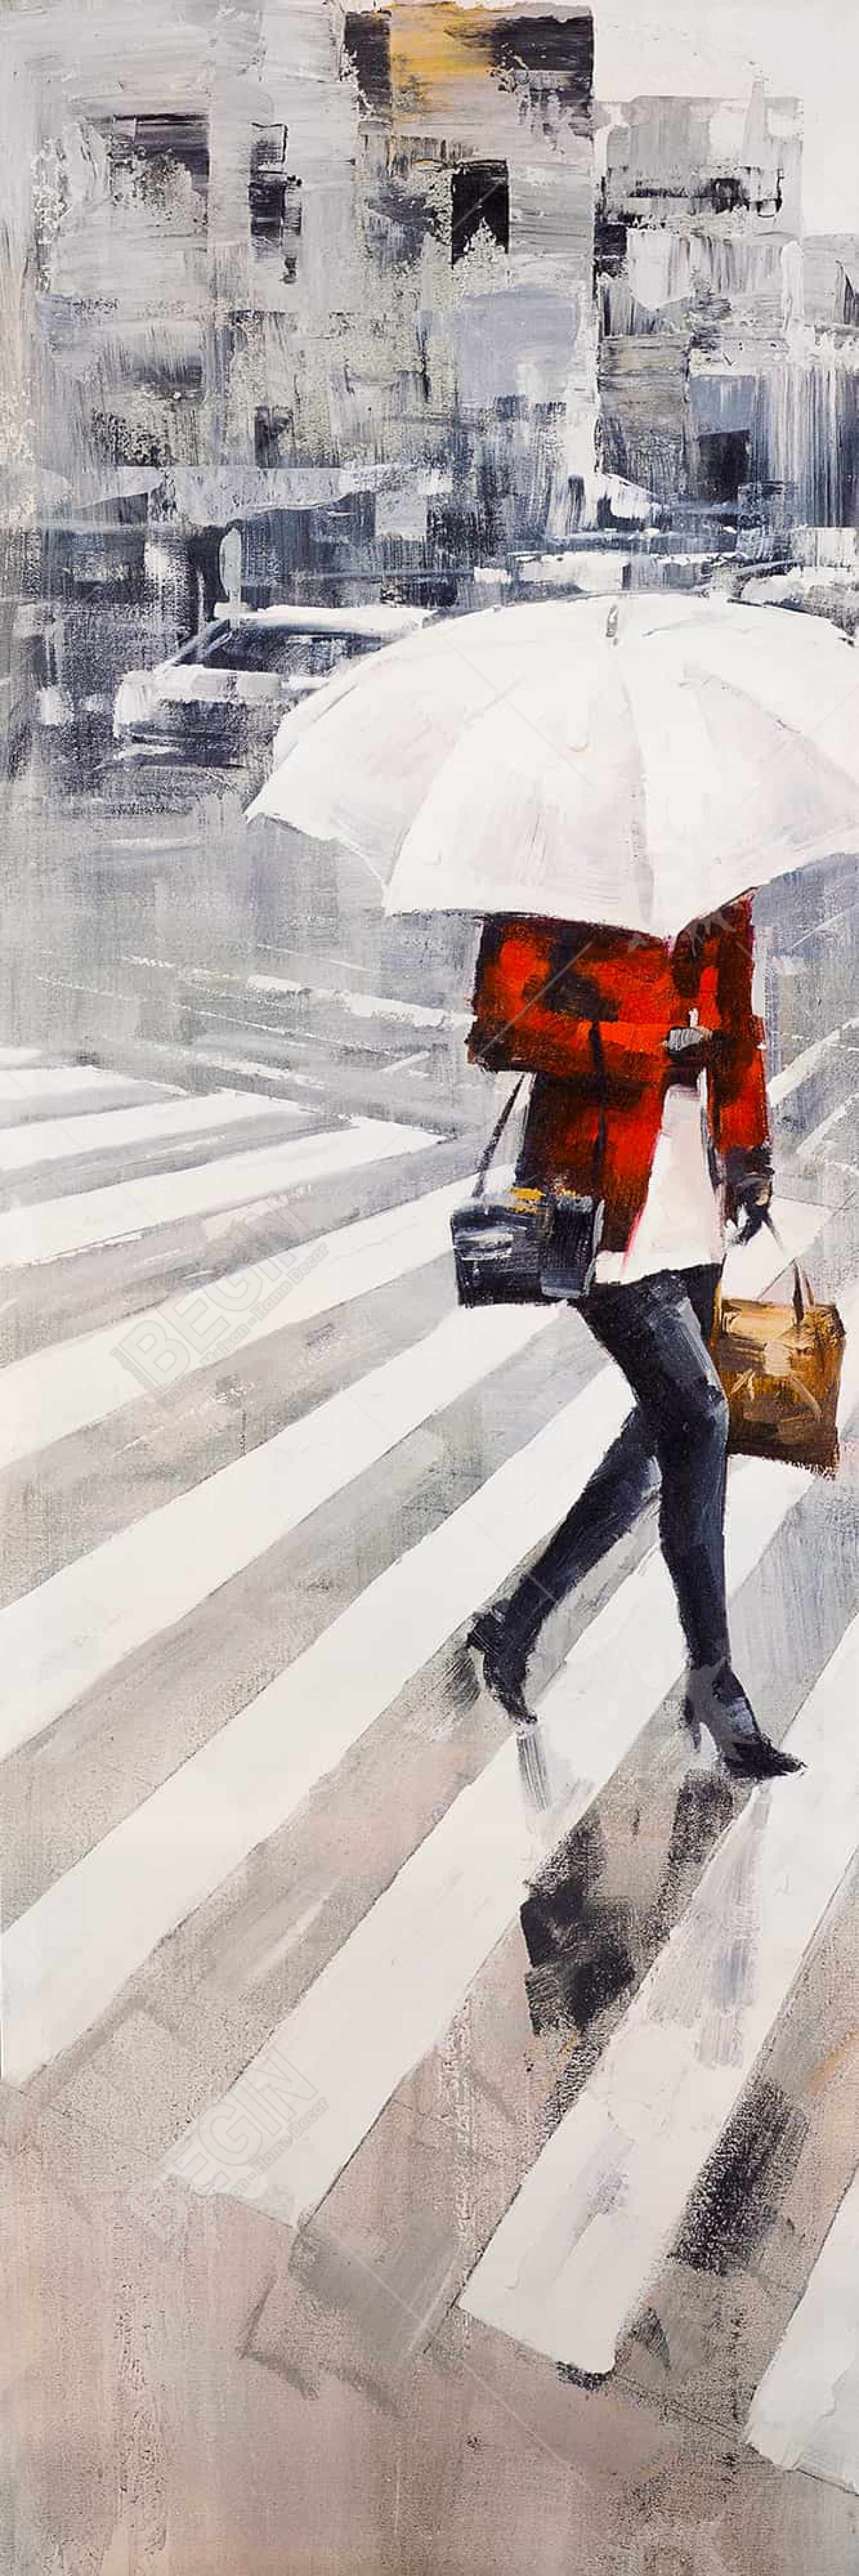 Woman walking with her umbrella